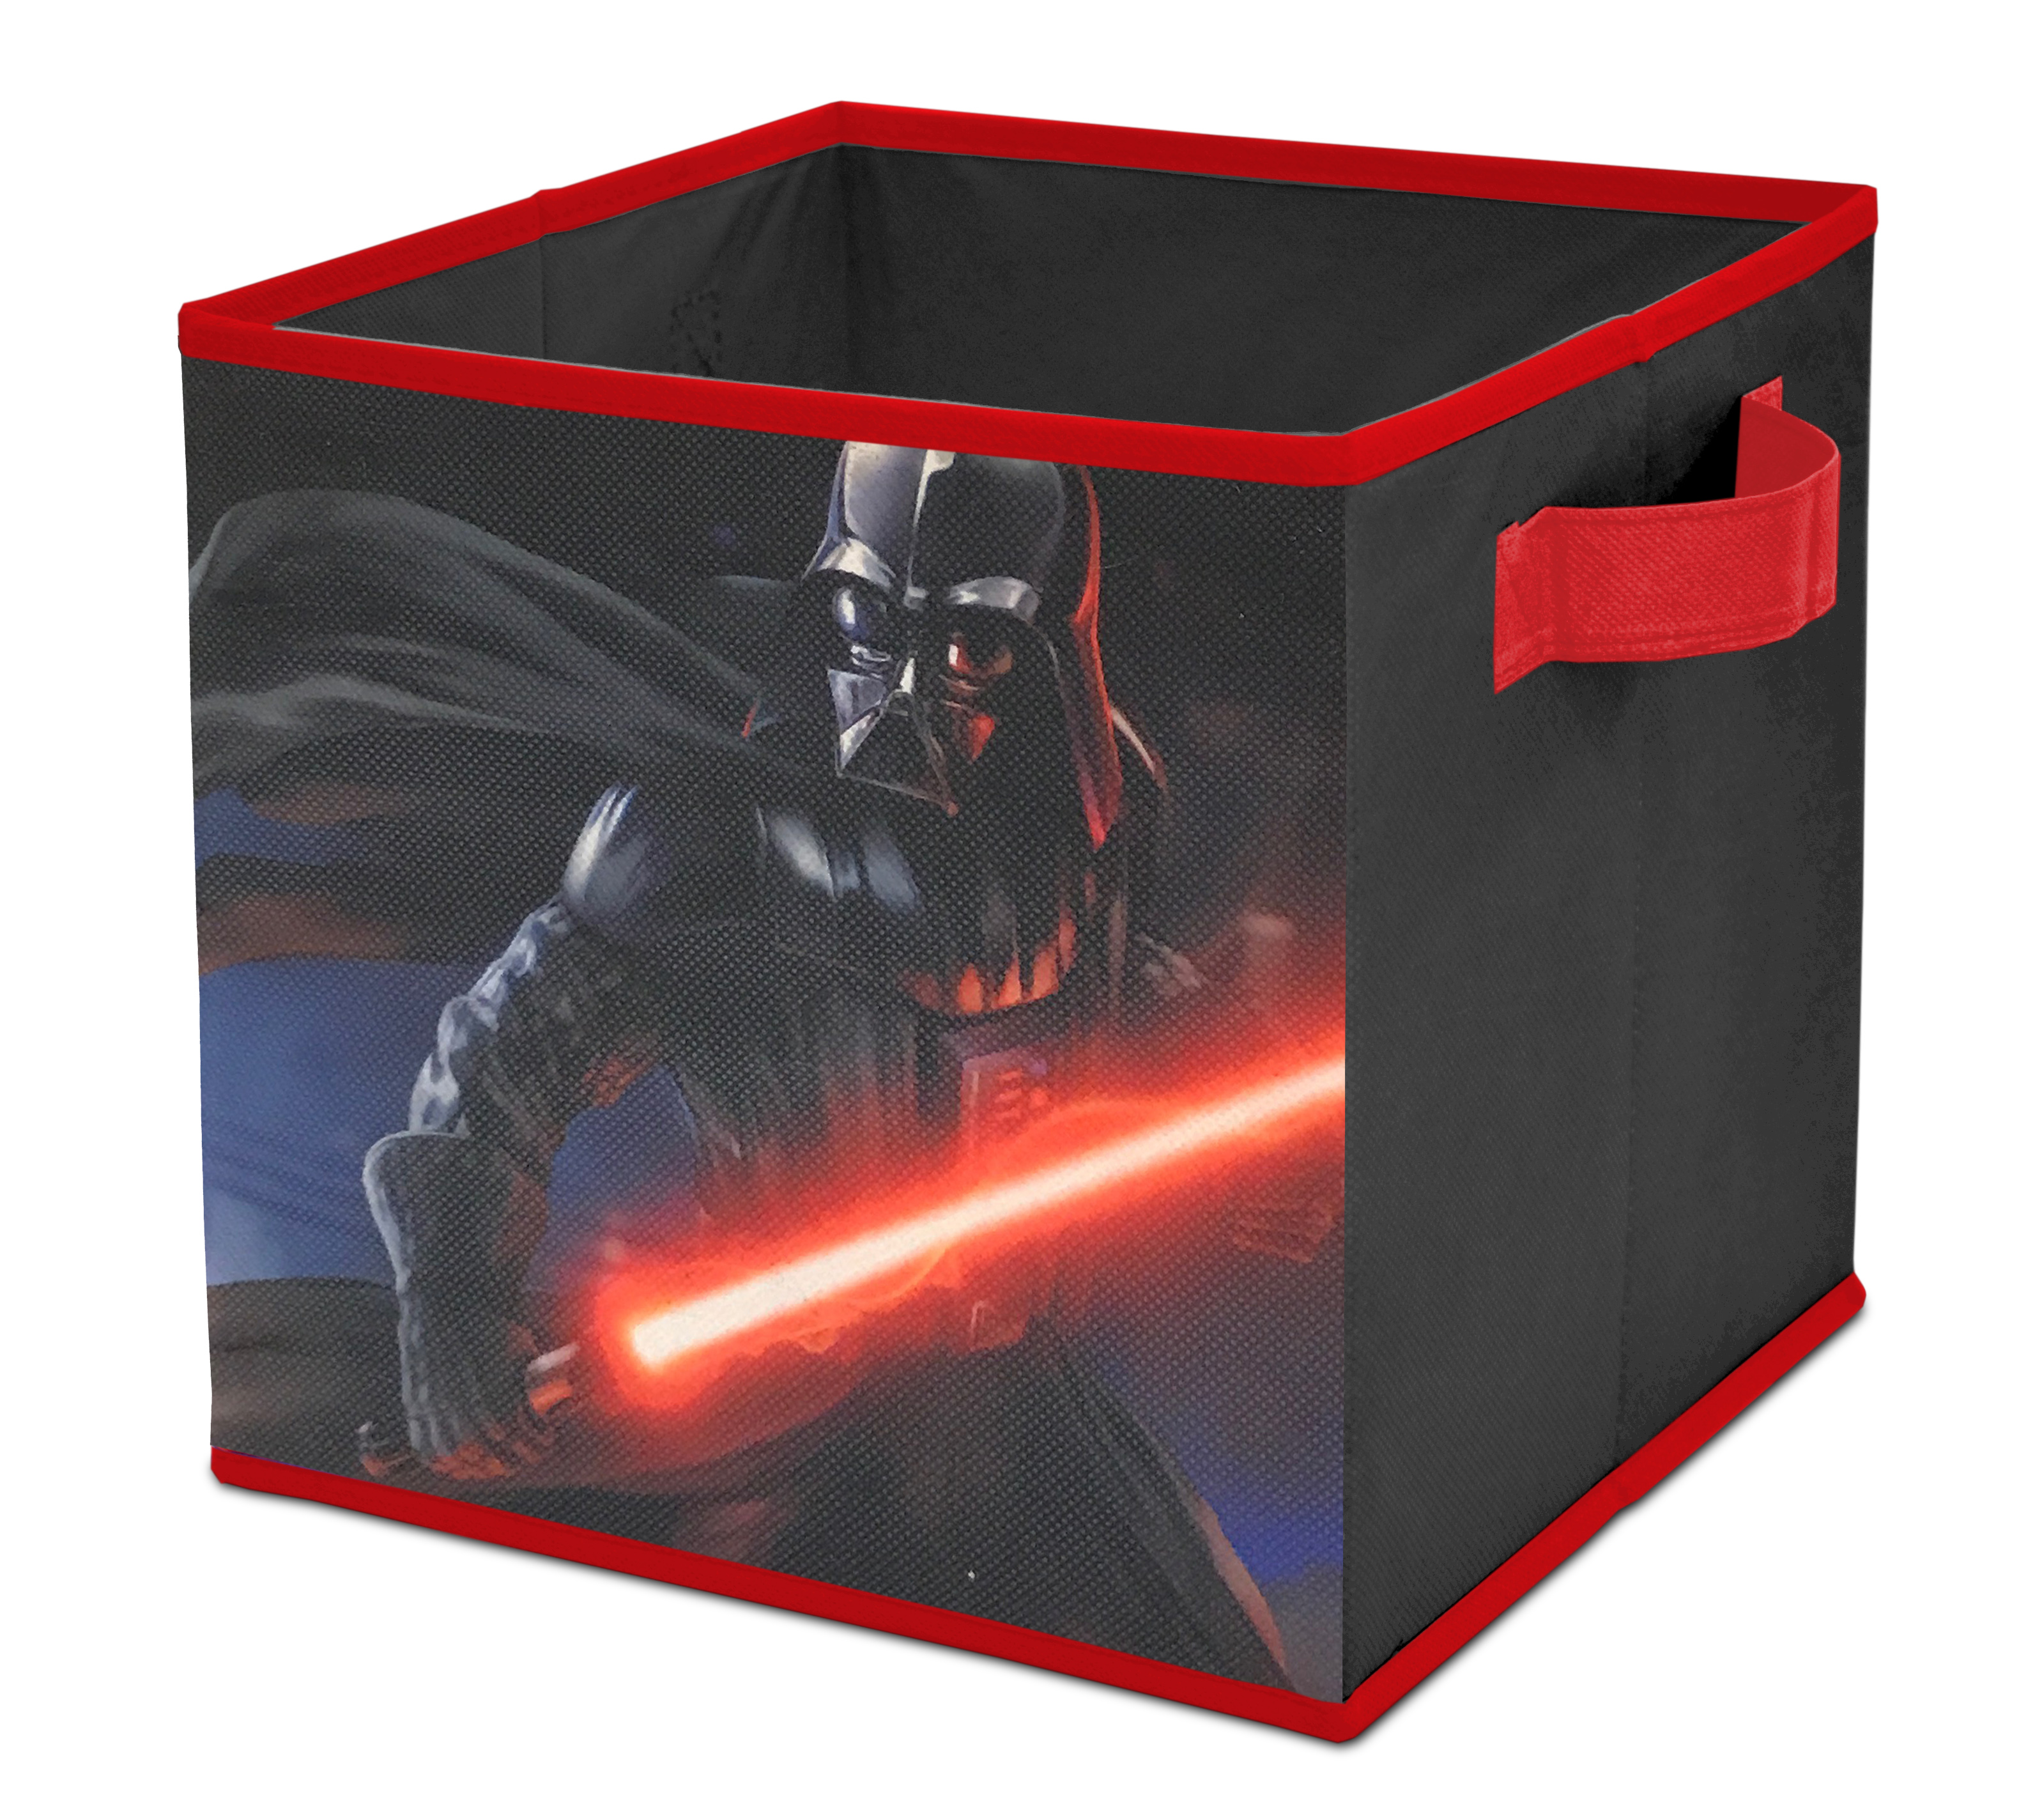 Star Wars Set of 2 Storage Collapsible Cubes